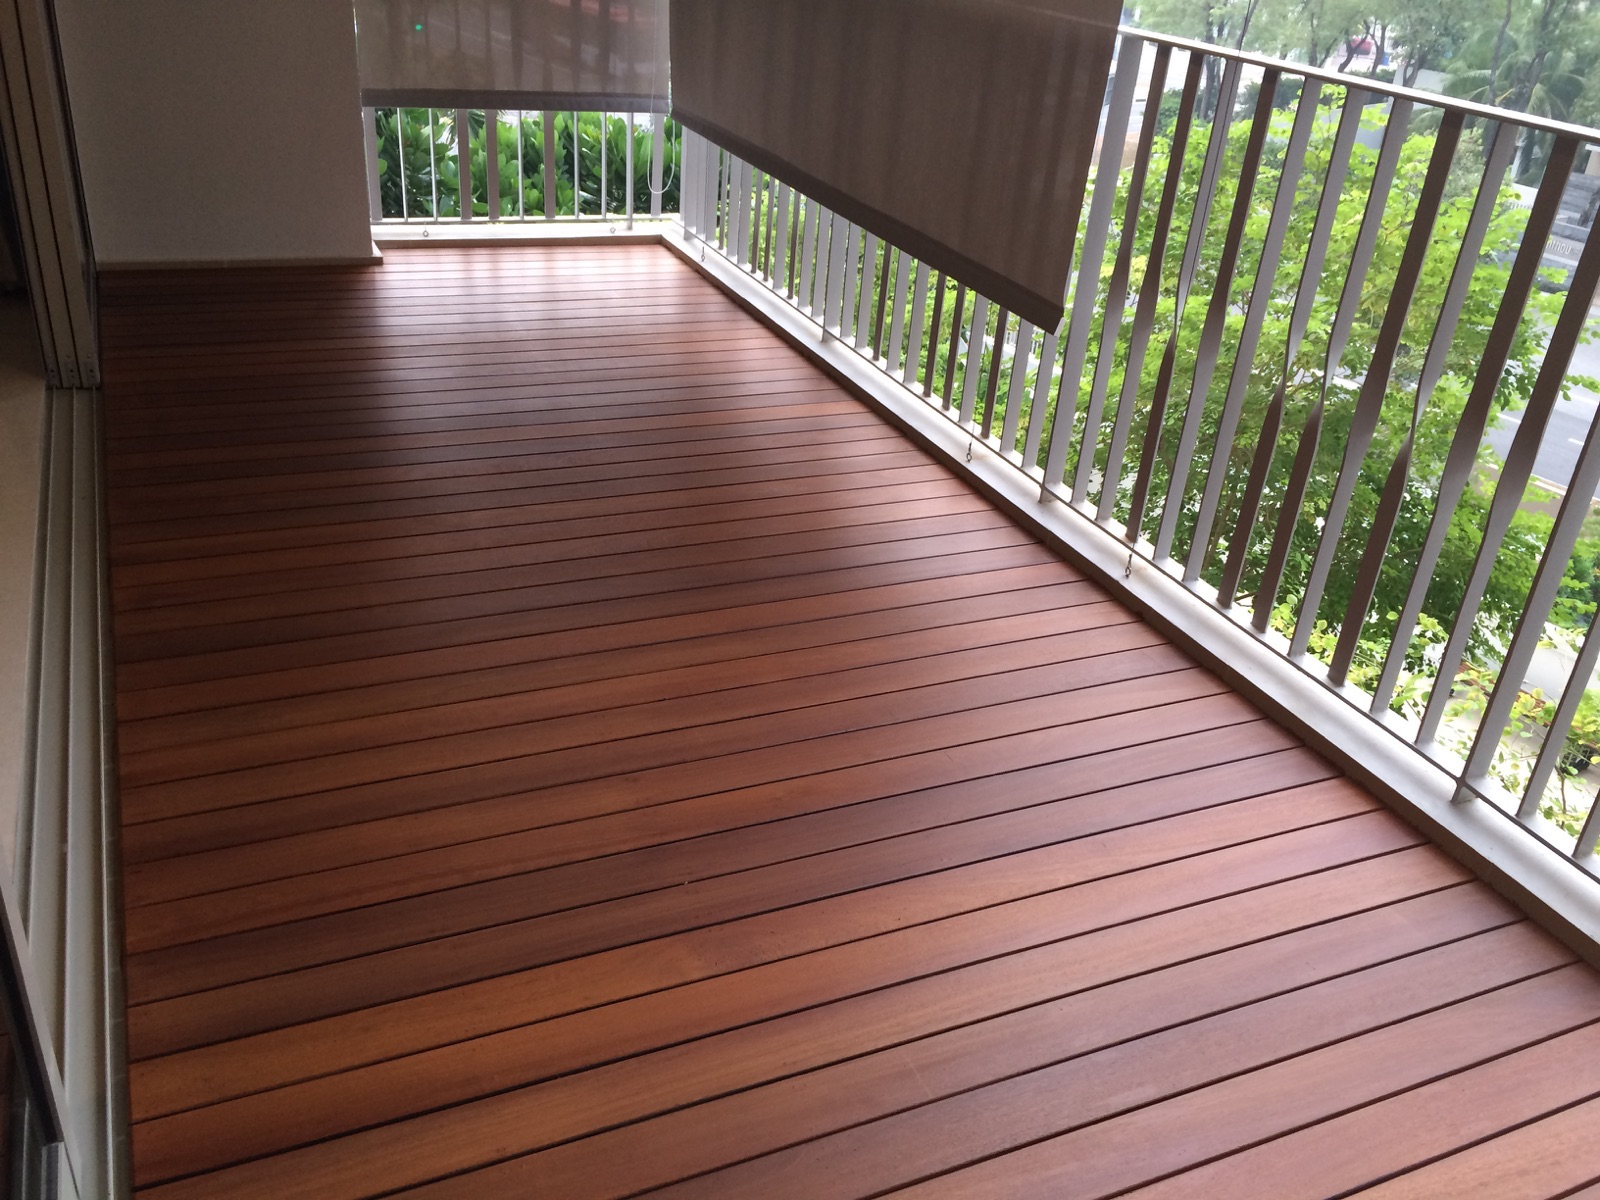 Balcony Decking In Singapore How To Pick The Best Material